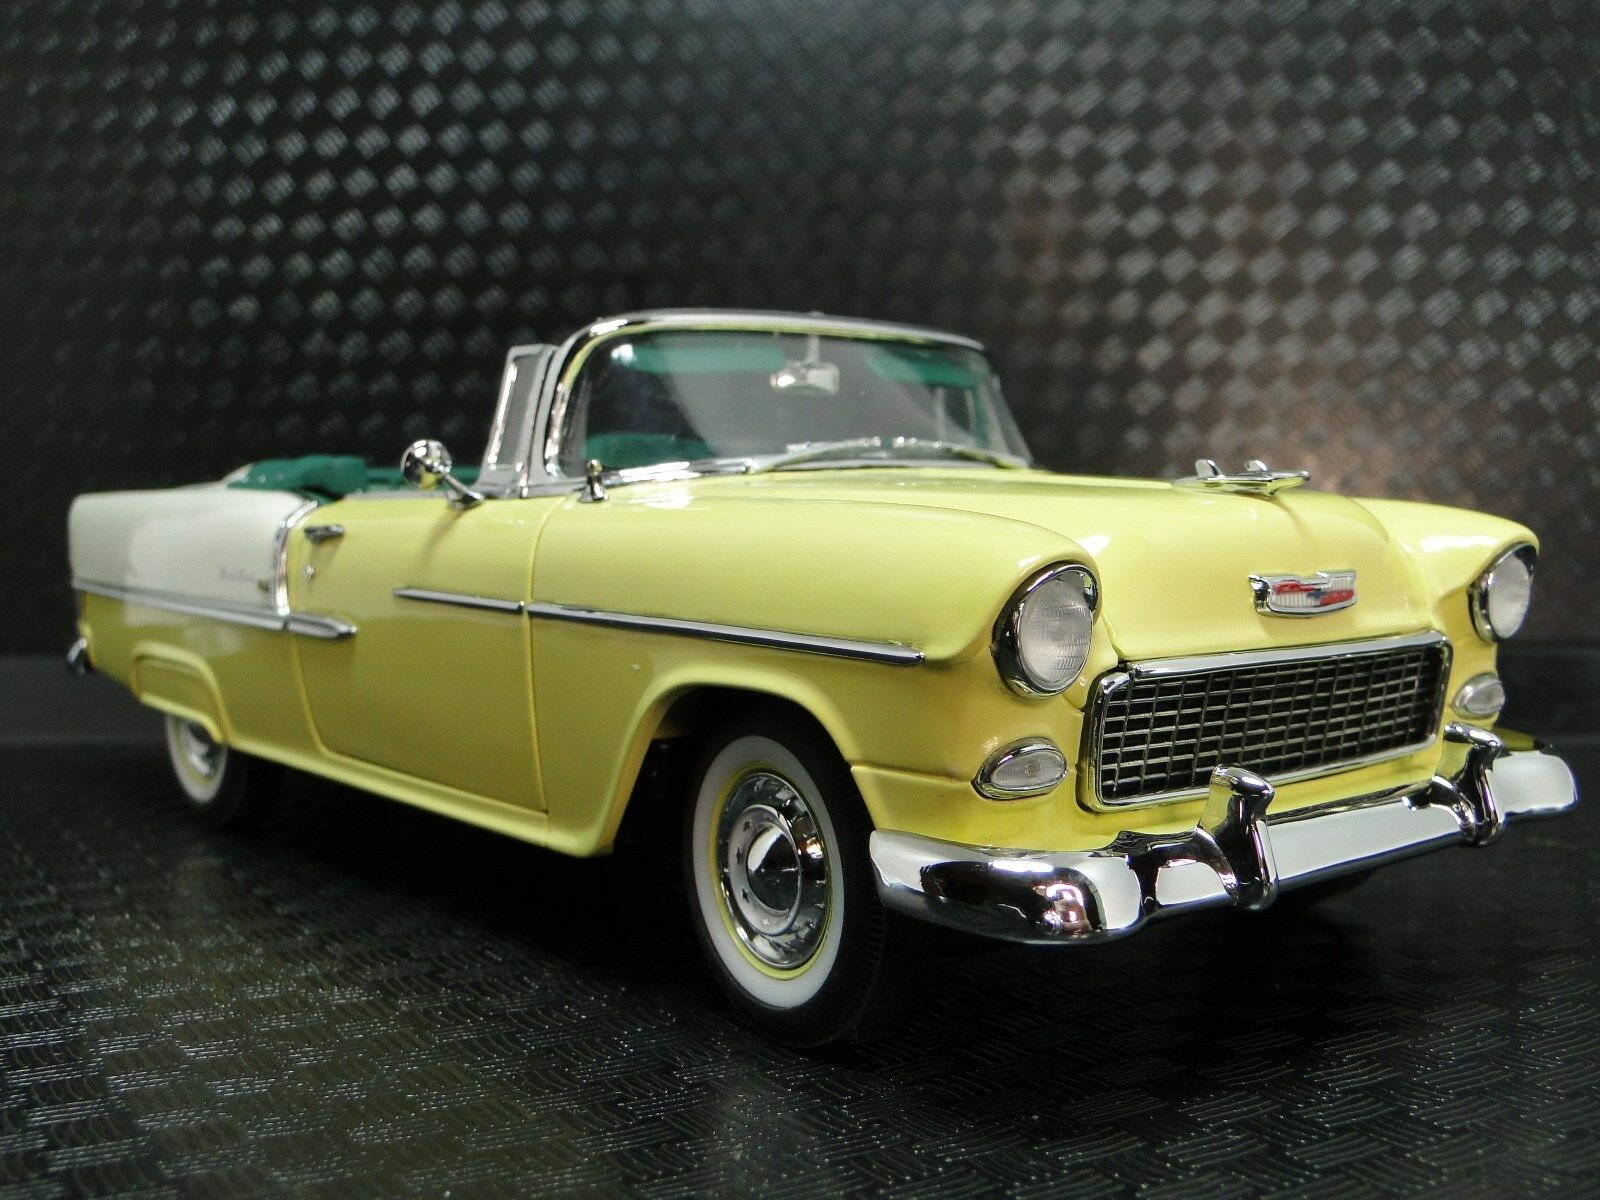 1955 Chevy Bel Air Chevrolet 1 24 Sport Car Vintage 12 carrusel amarillo Metal 18